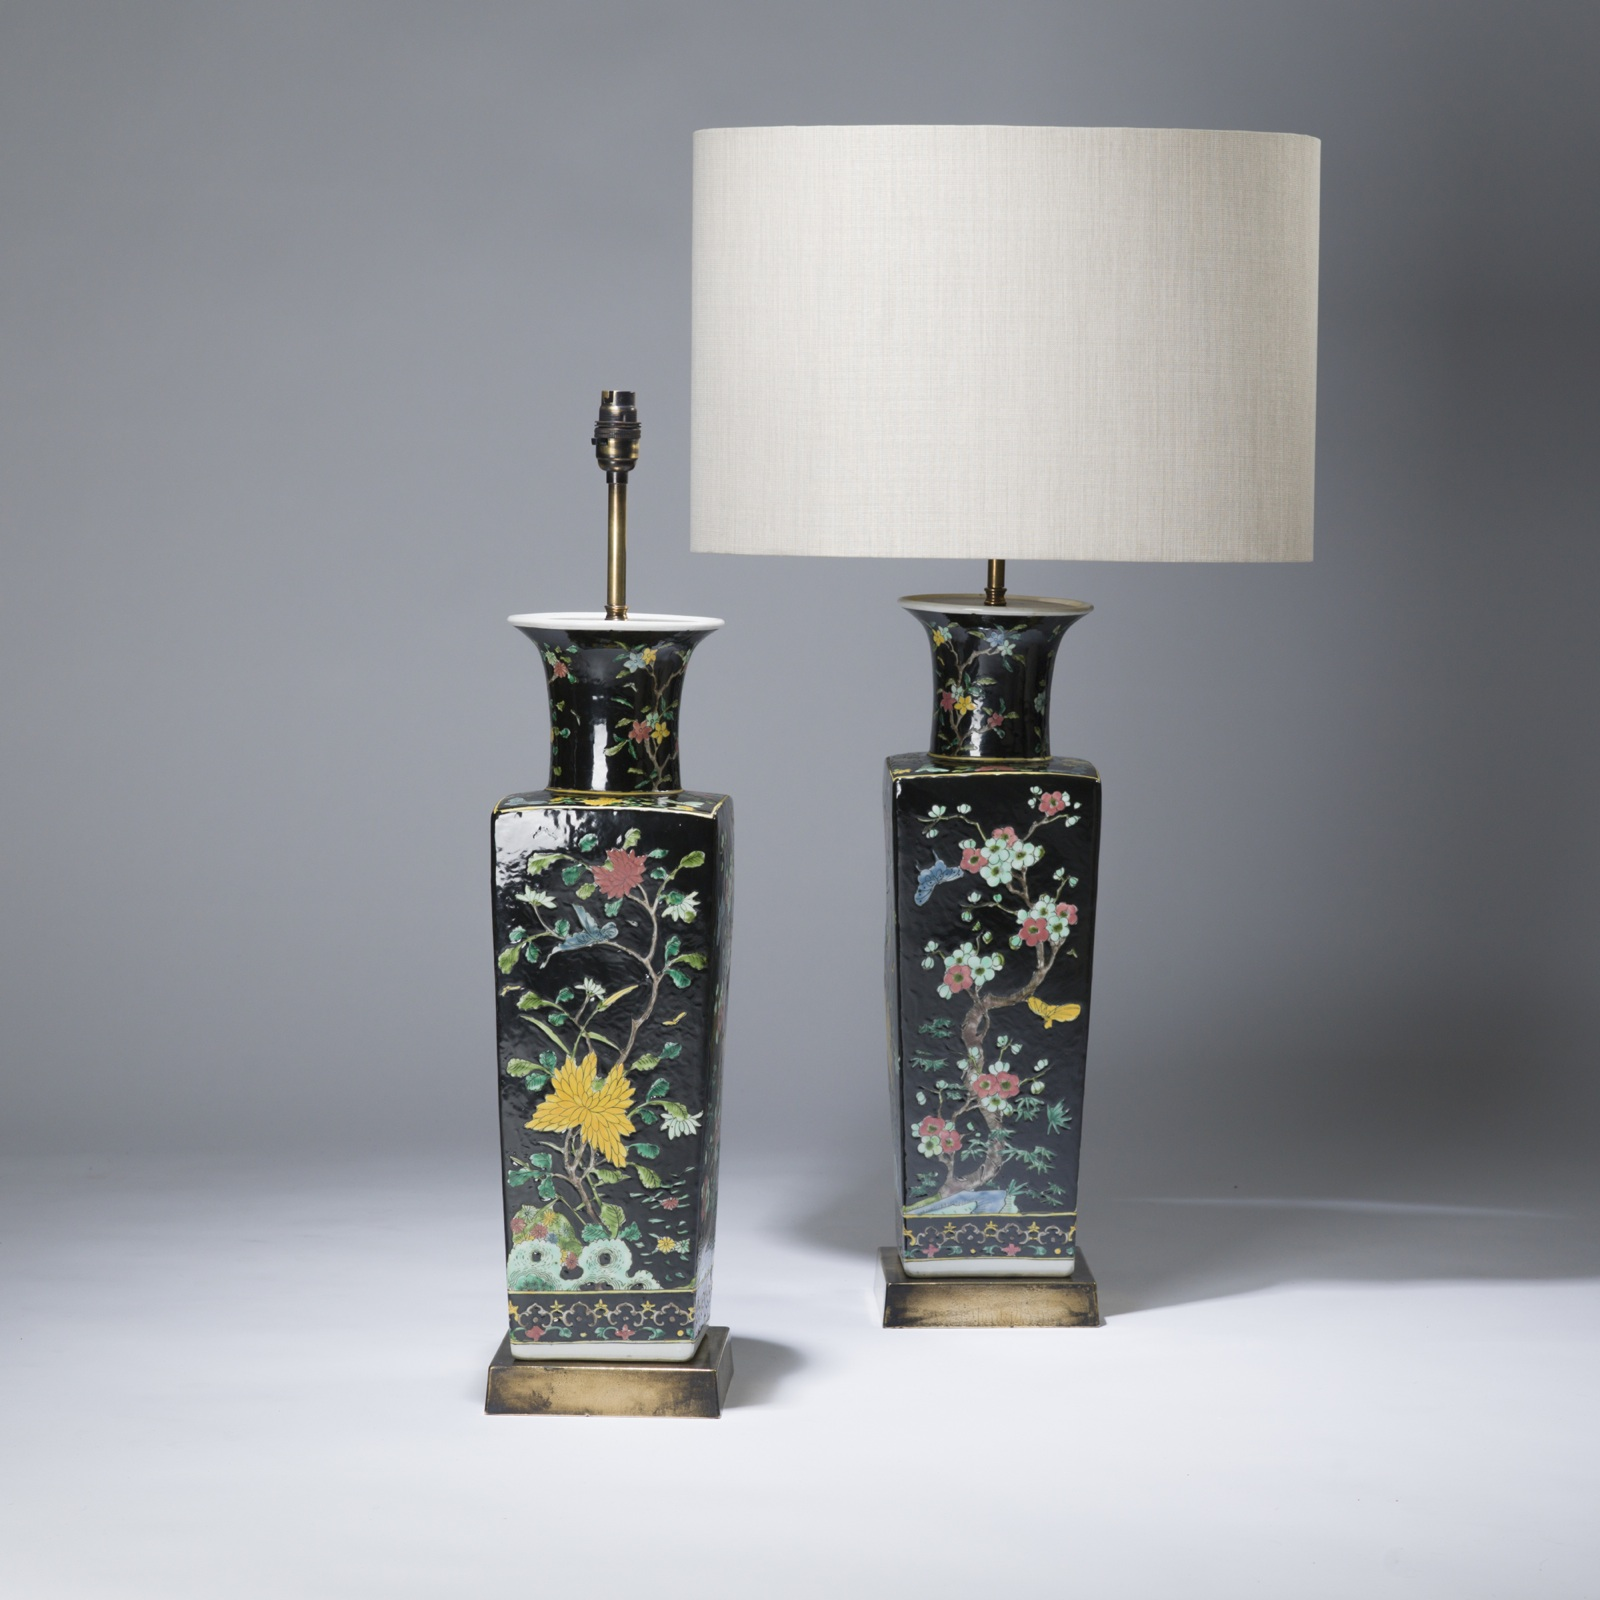 Pair of large black chinese ceramic lamps on distressed brass pair of large black chinese ceramic lamps on distressed brass bases reviewsmspy